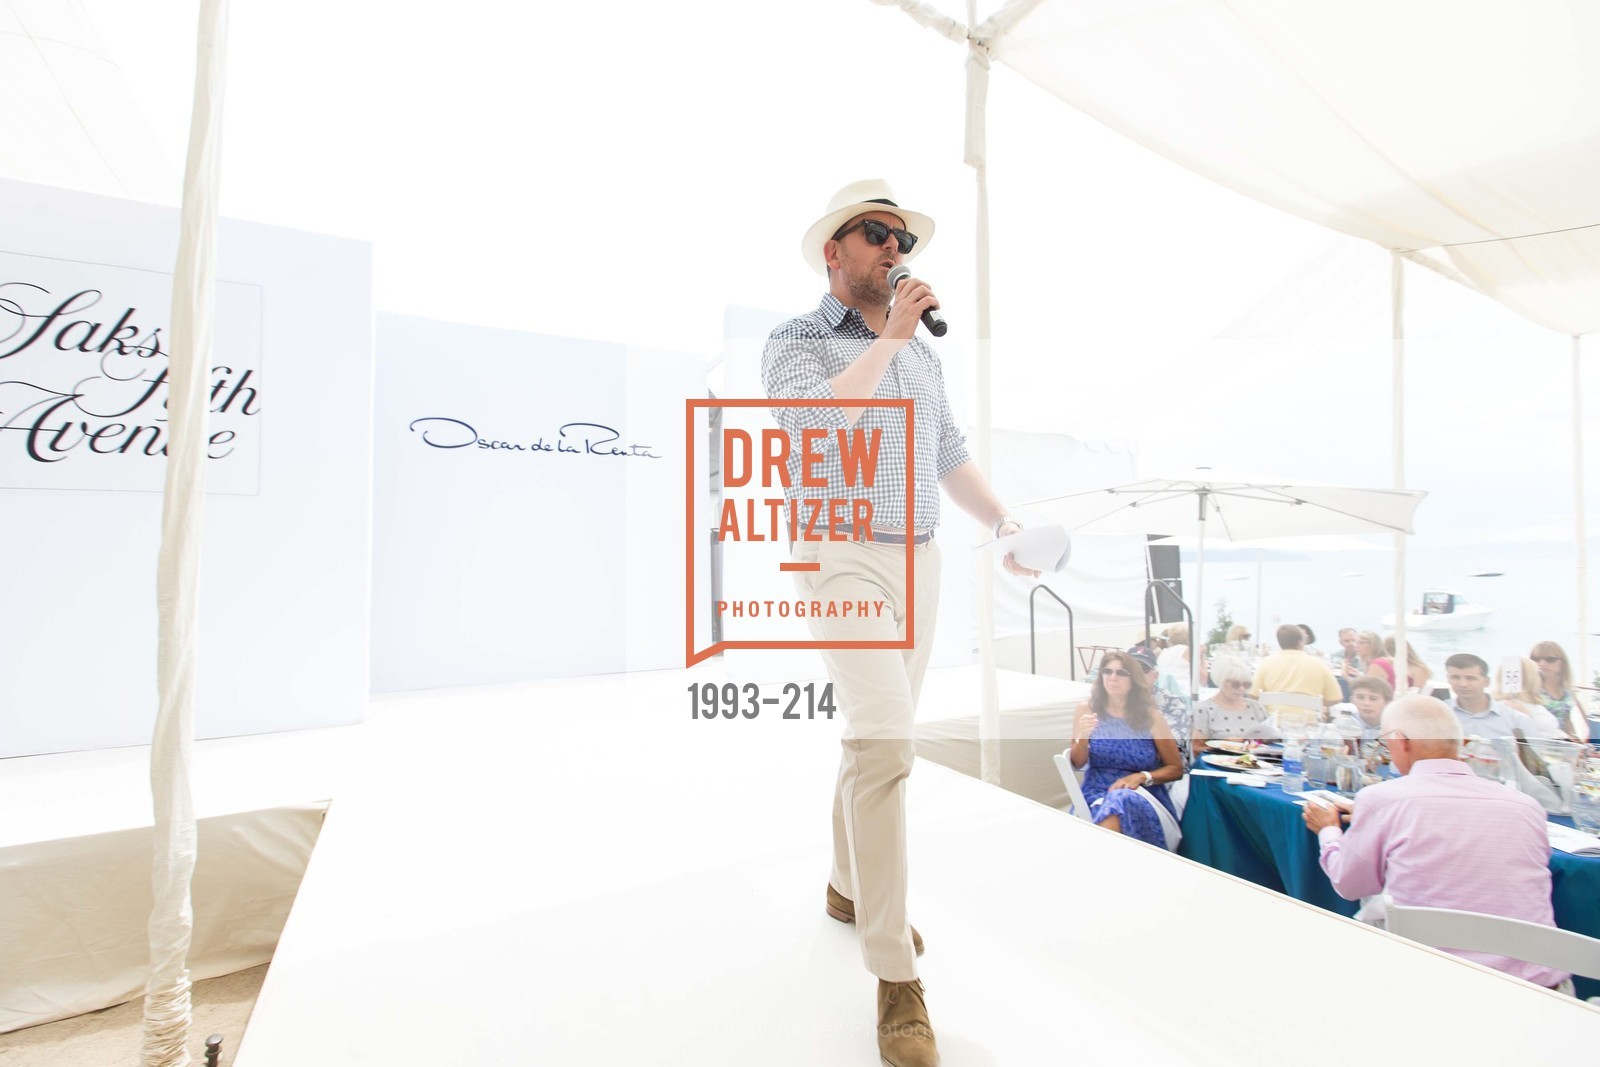 Andrew McVinish, Saks Fifth Avenue and The League to Save Lake Tahoe Present Fashion on the Lake, Private Residence, August 1st, 2015,Drew Altizer, Drew Altizer Photography, full-service agency, private events, San Francisco photographer, photographer california